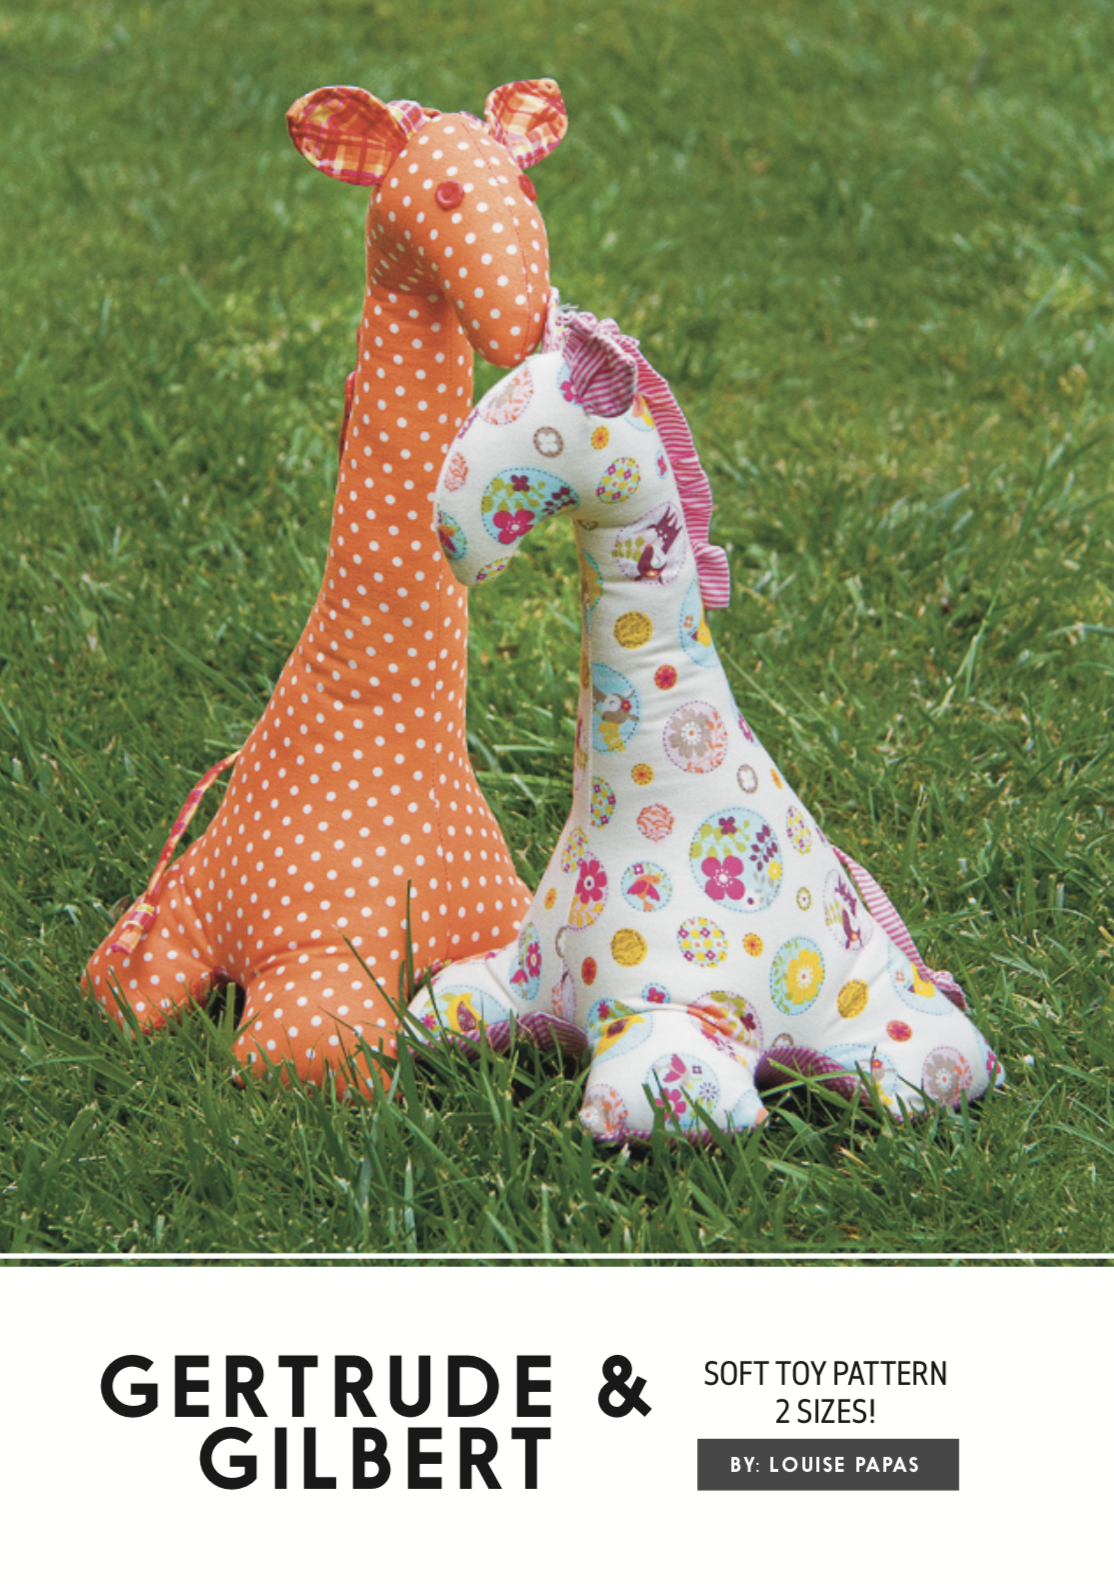 Gertrude & Gilbert Pattern by Louise Papas